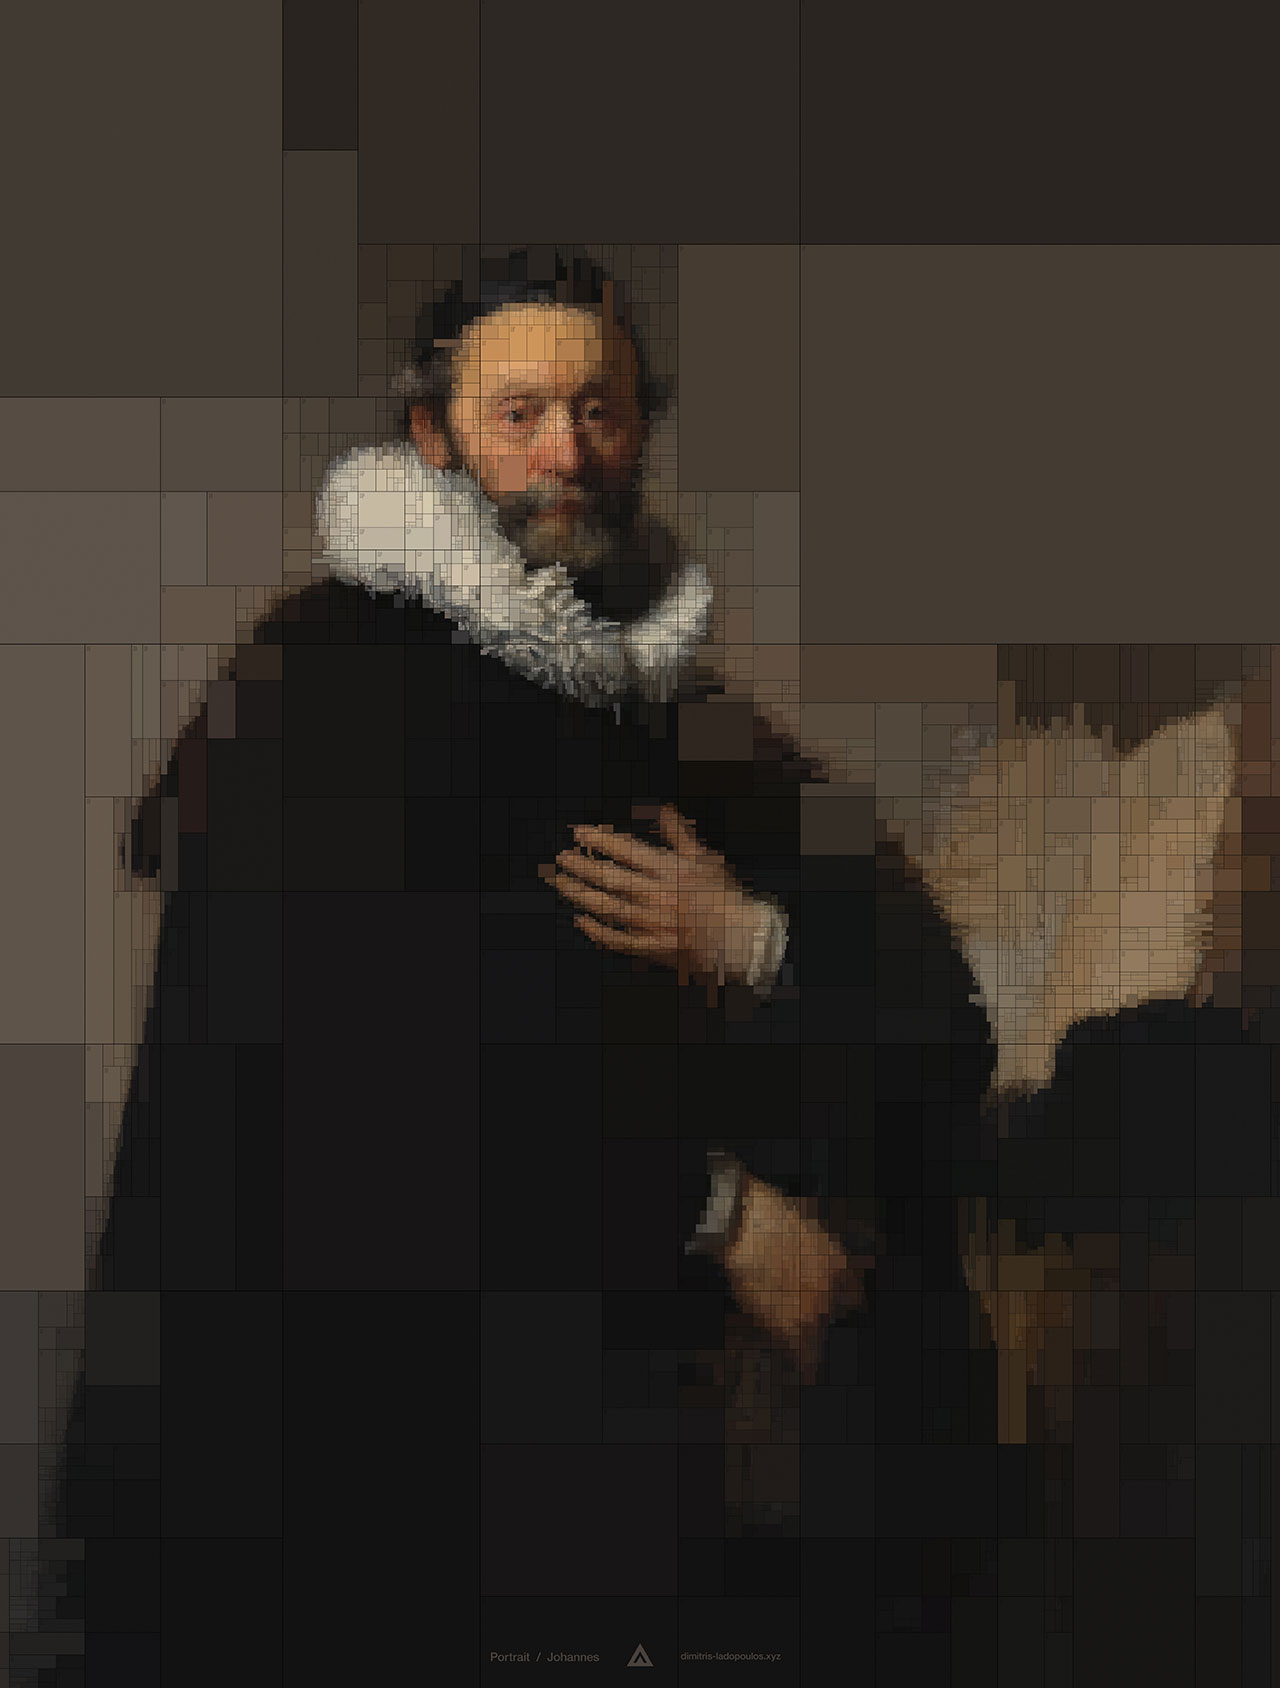 Johannes, from Portraits series by Dimitris Ladopoulos (Original painting - Portrait of Johannes Wtenbogaert by Rembrandt Harmensz van Rijn, 1633).